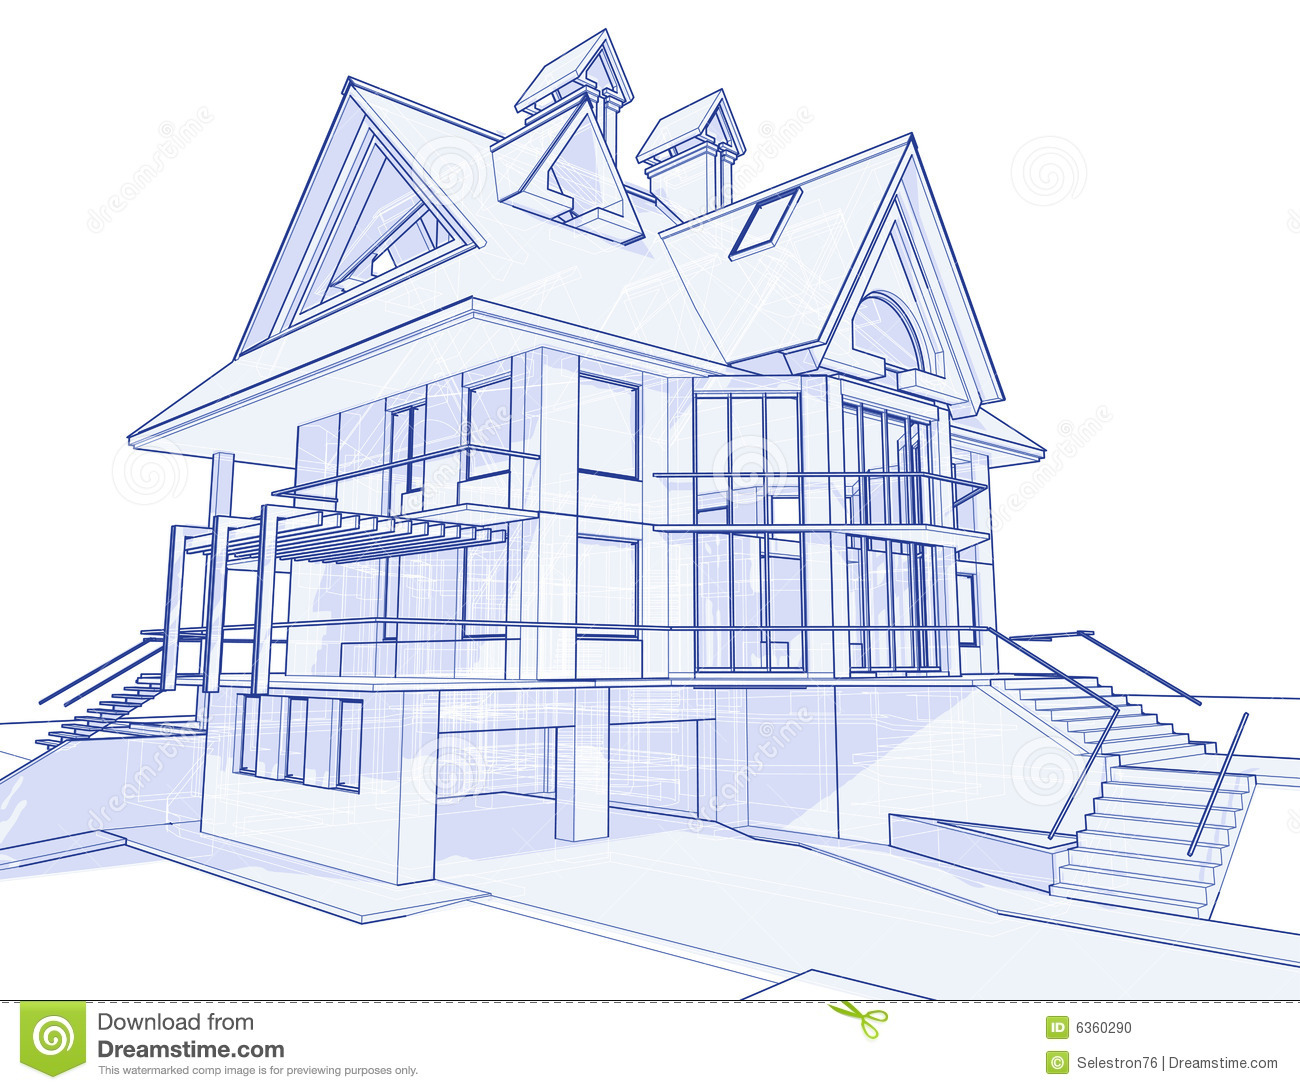 Https Www Dreamstime Com Stock Photo Modern House Blueprint Image6360290